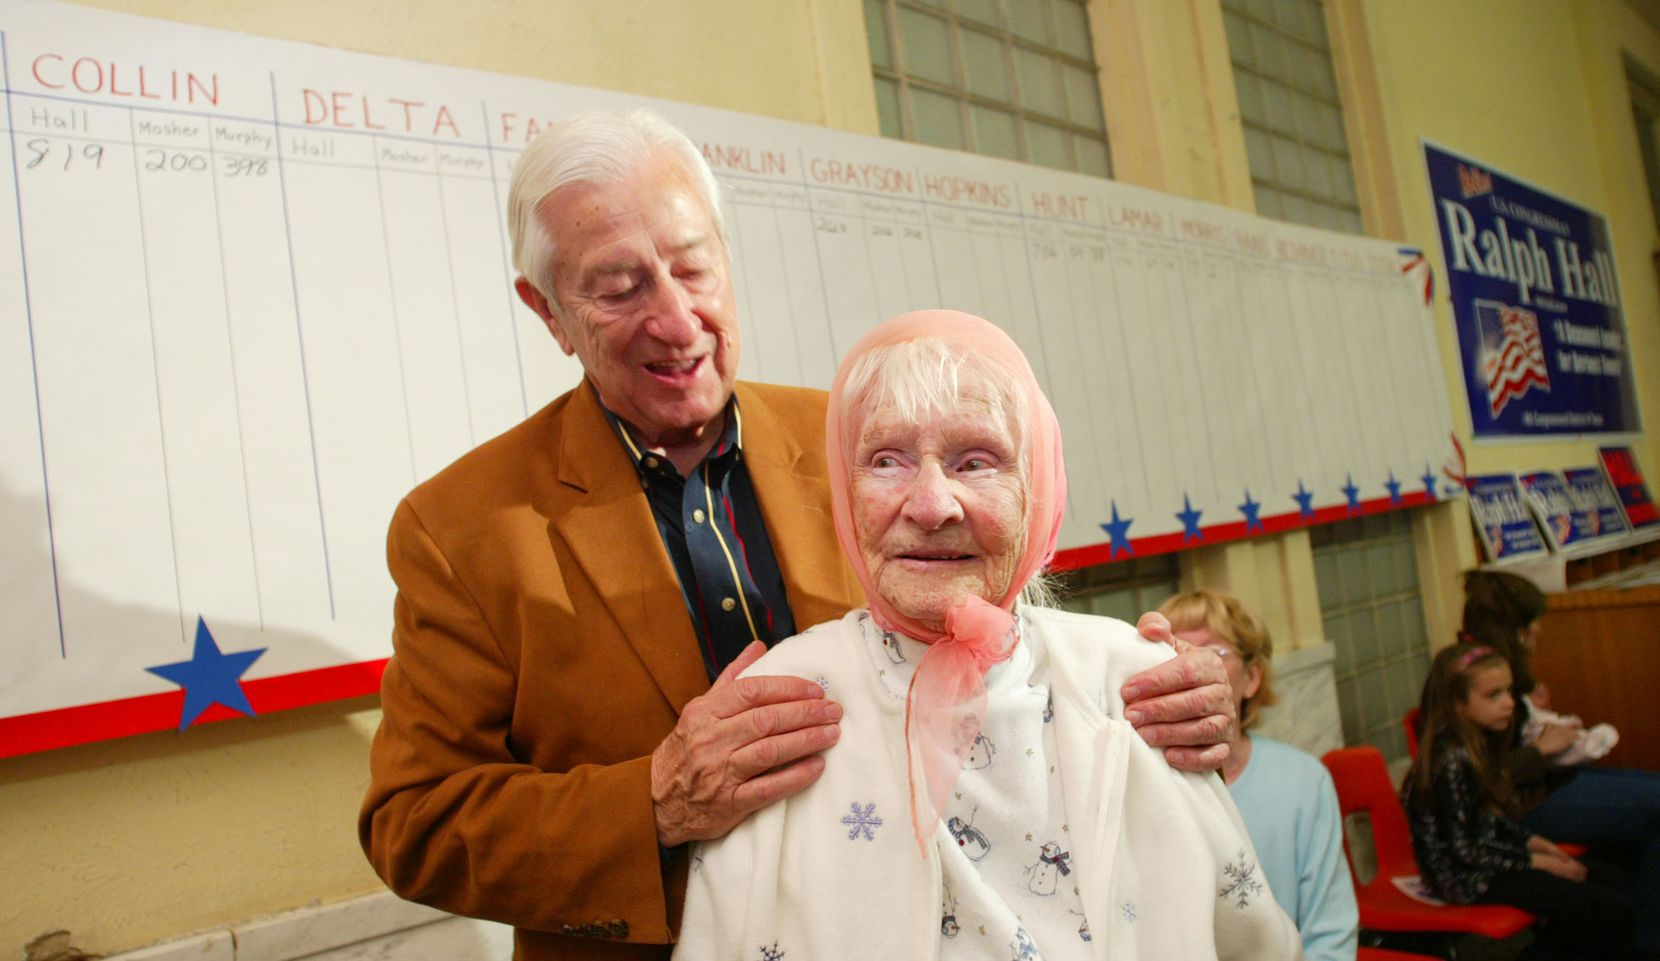 Rep. Ralph Hall introduced his oldest supporter at the time, Mable Dalton, 96, at an election night party at his Rockwall headquarters in March 2004.